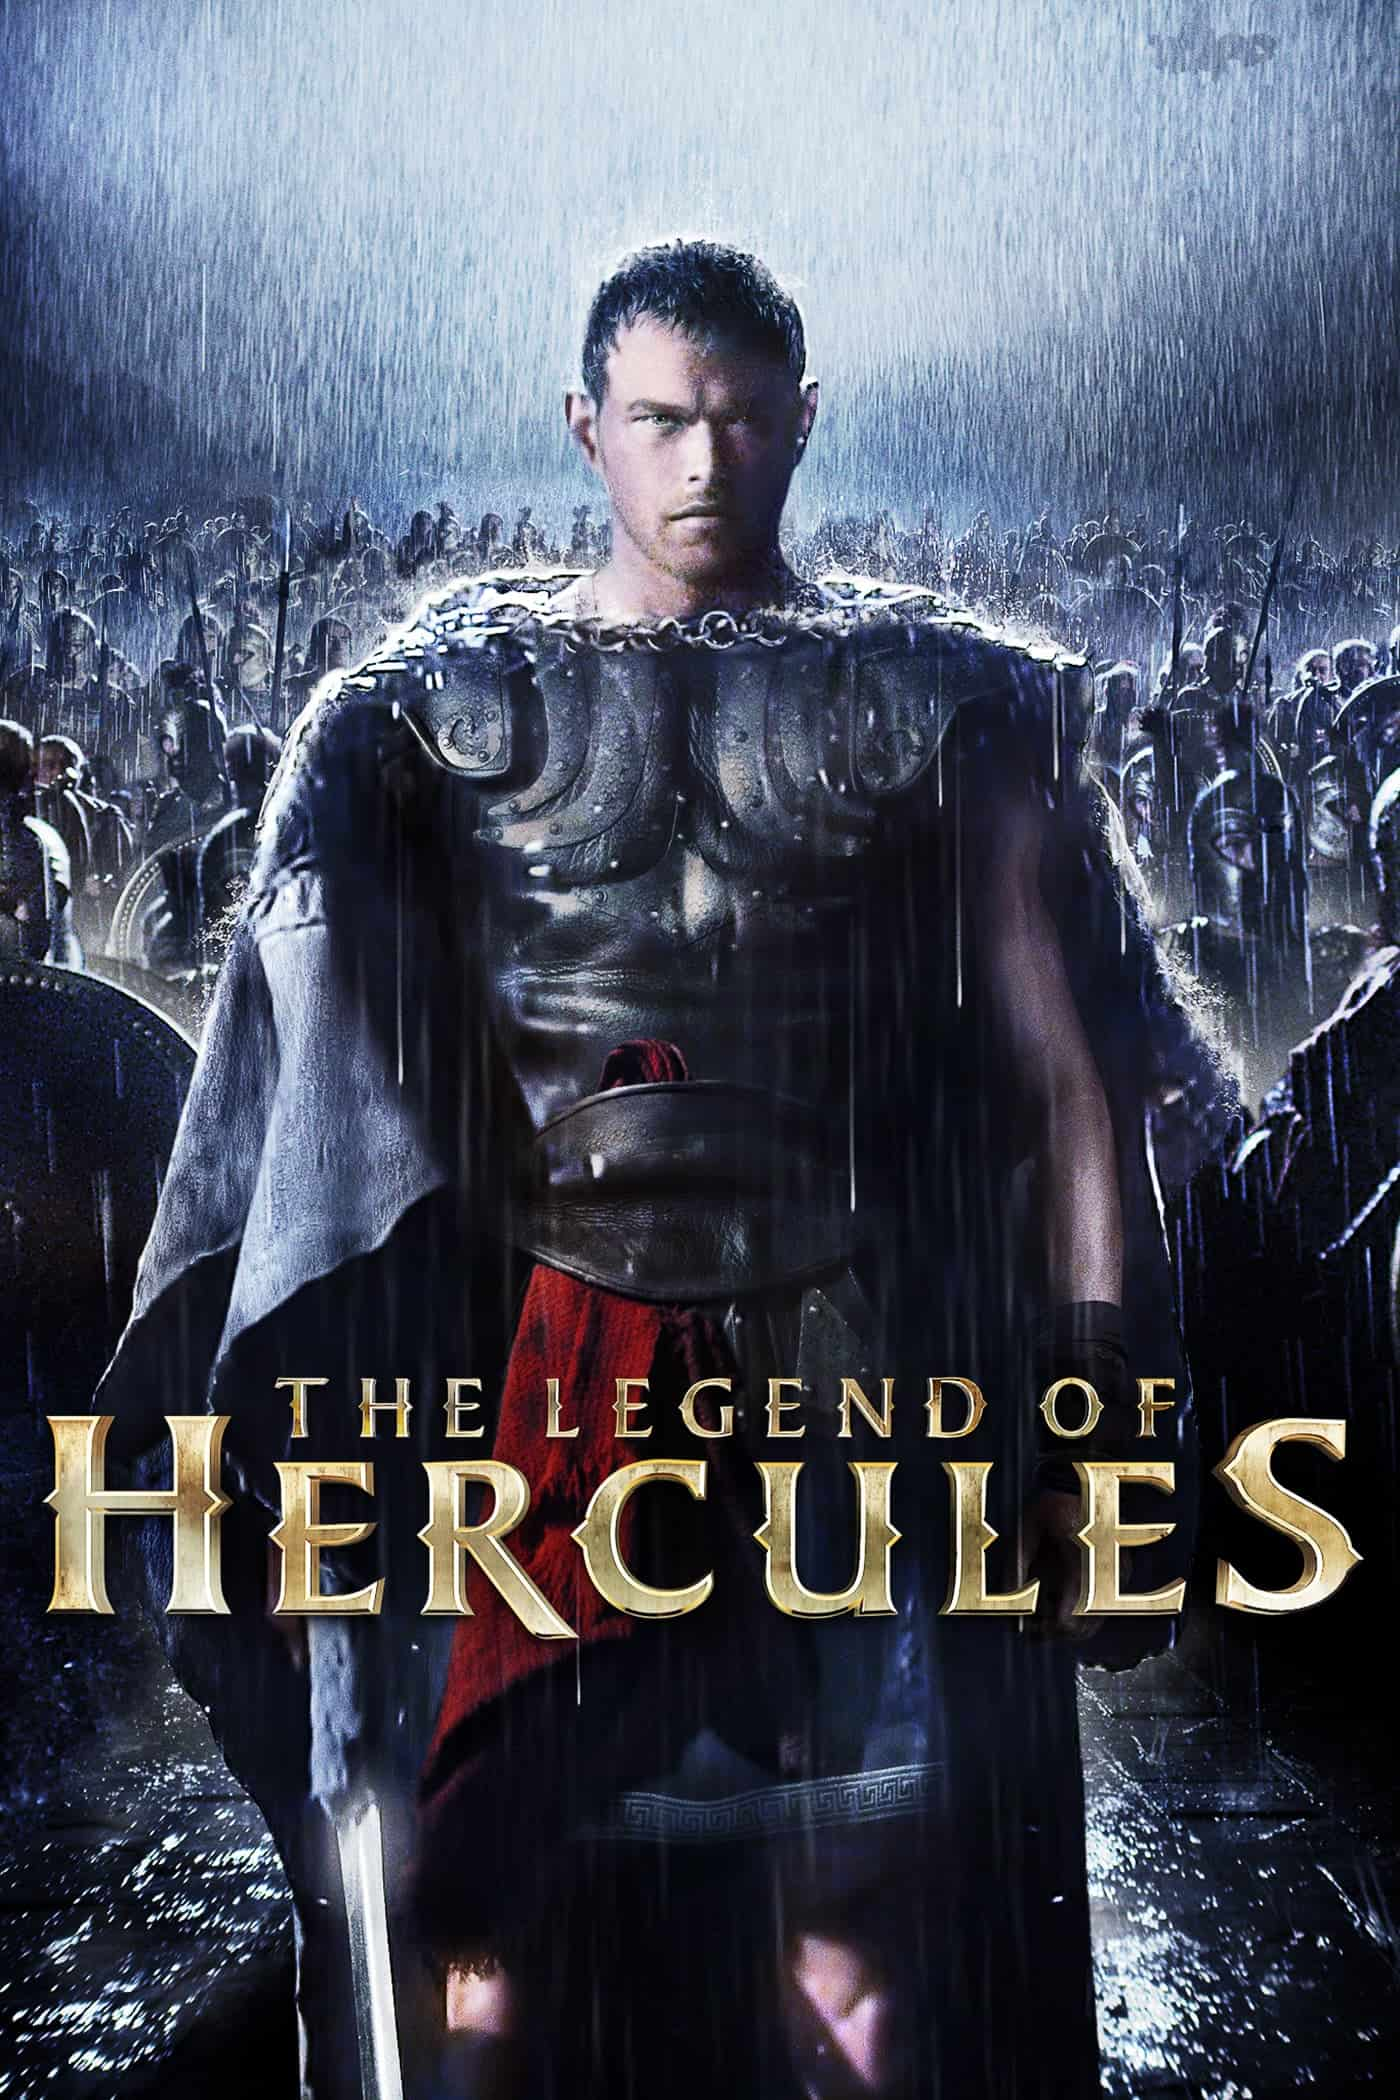 The Legend of Hercules, 2014